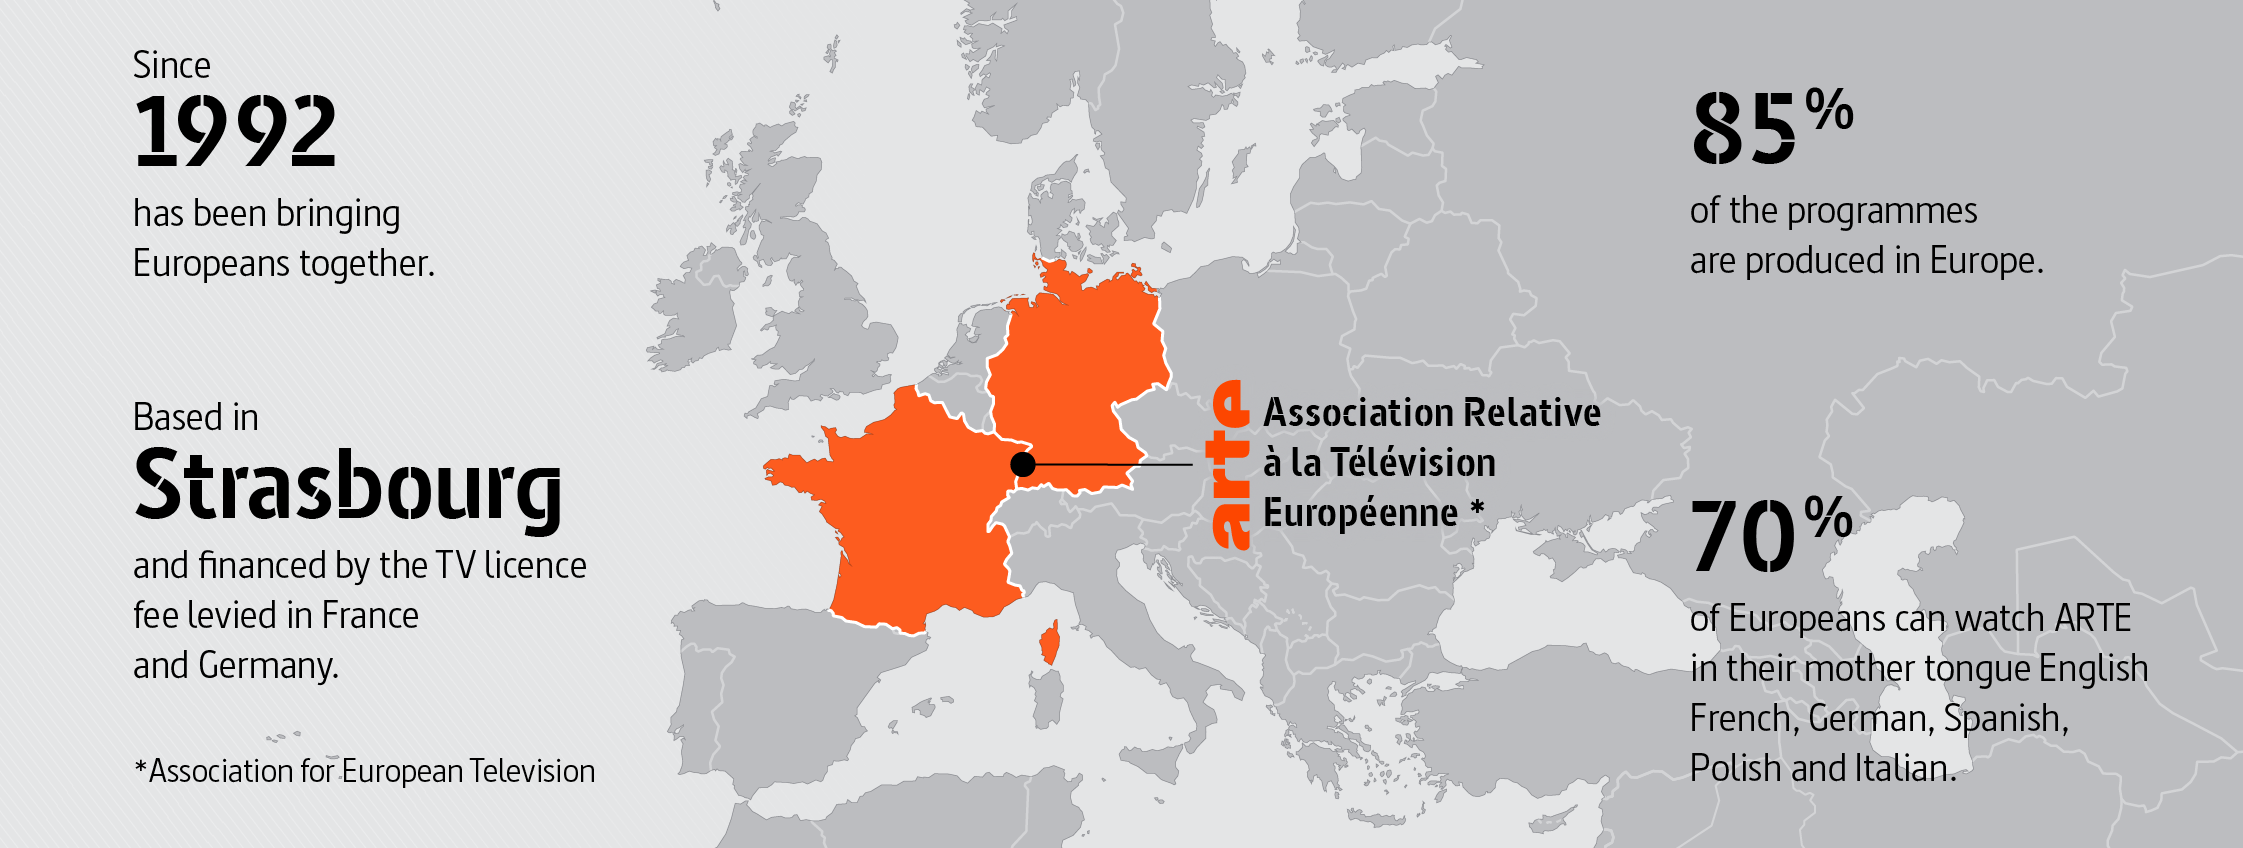 ARTE: Association relative à la télévision européenne (Association for European Television) Since 1992 ARTE has been bringing Europeans together. Based in Strasbourg and financed by the TV licence fee levied in France and Germany. 85 % of the programmes are produced in Europe. 70 % of Europeans can watch ARTE in their mother tongue French, German, English, Spanish, Polish and Italian.